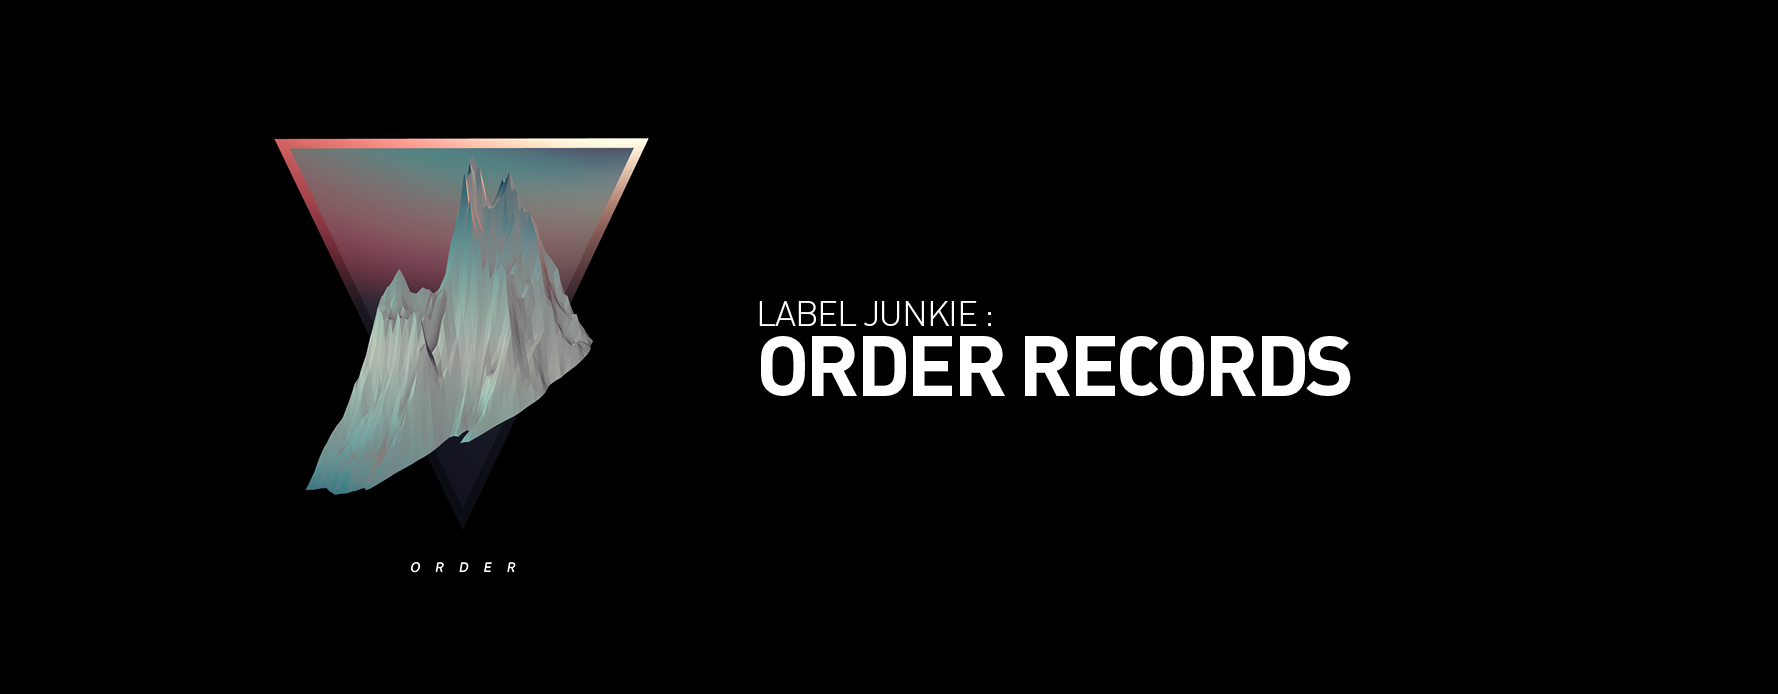 source: Order Records